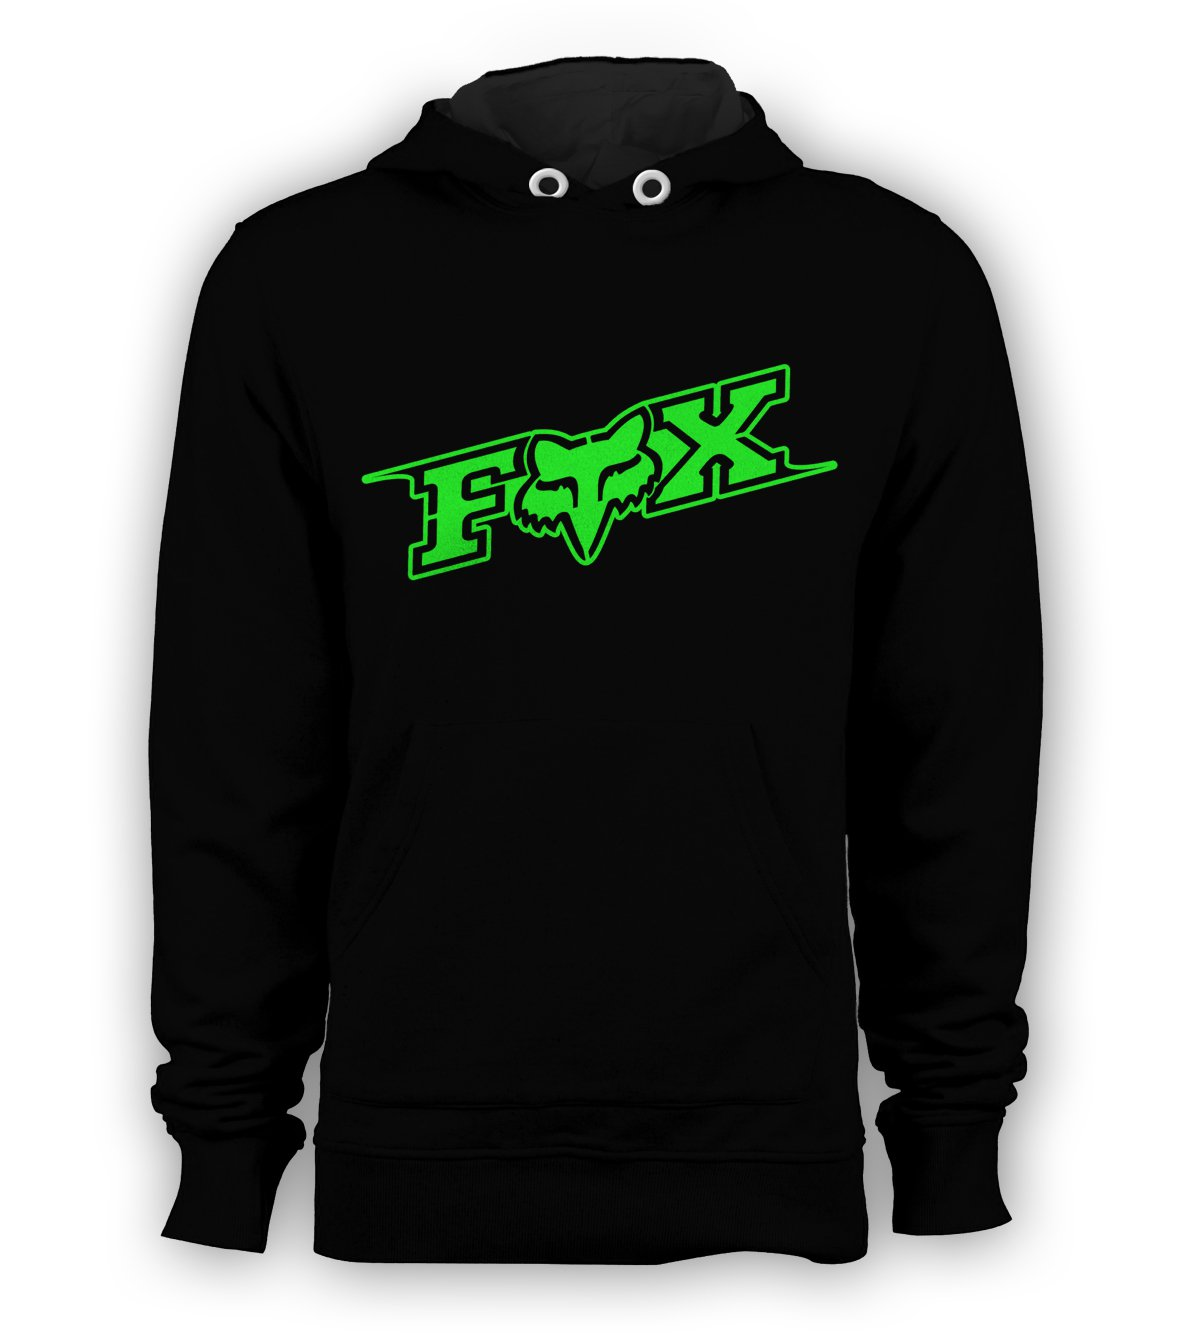 Fox Racing Green Logo Pullover Hoodie Men BMX Skateboard X-Games Sweatshirts Size S to 3XL New Black